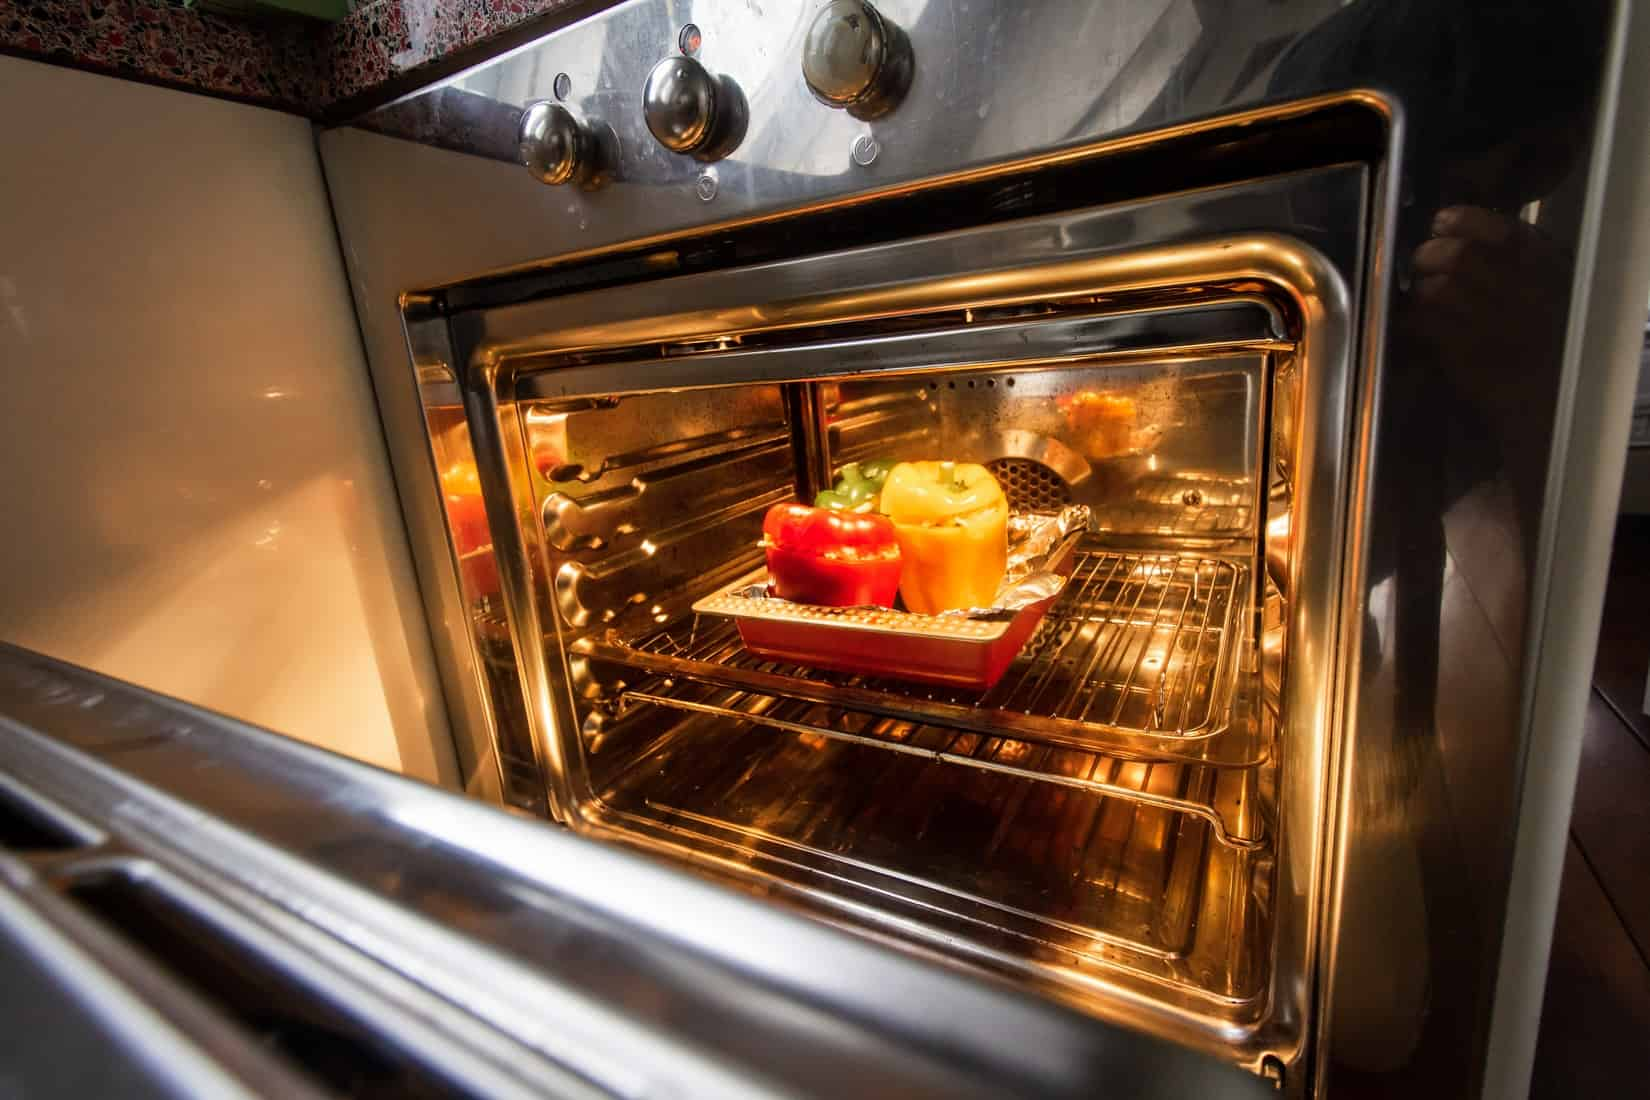 baking food inside the oven